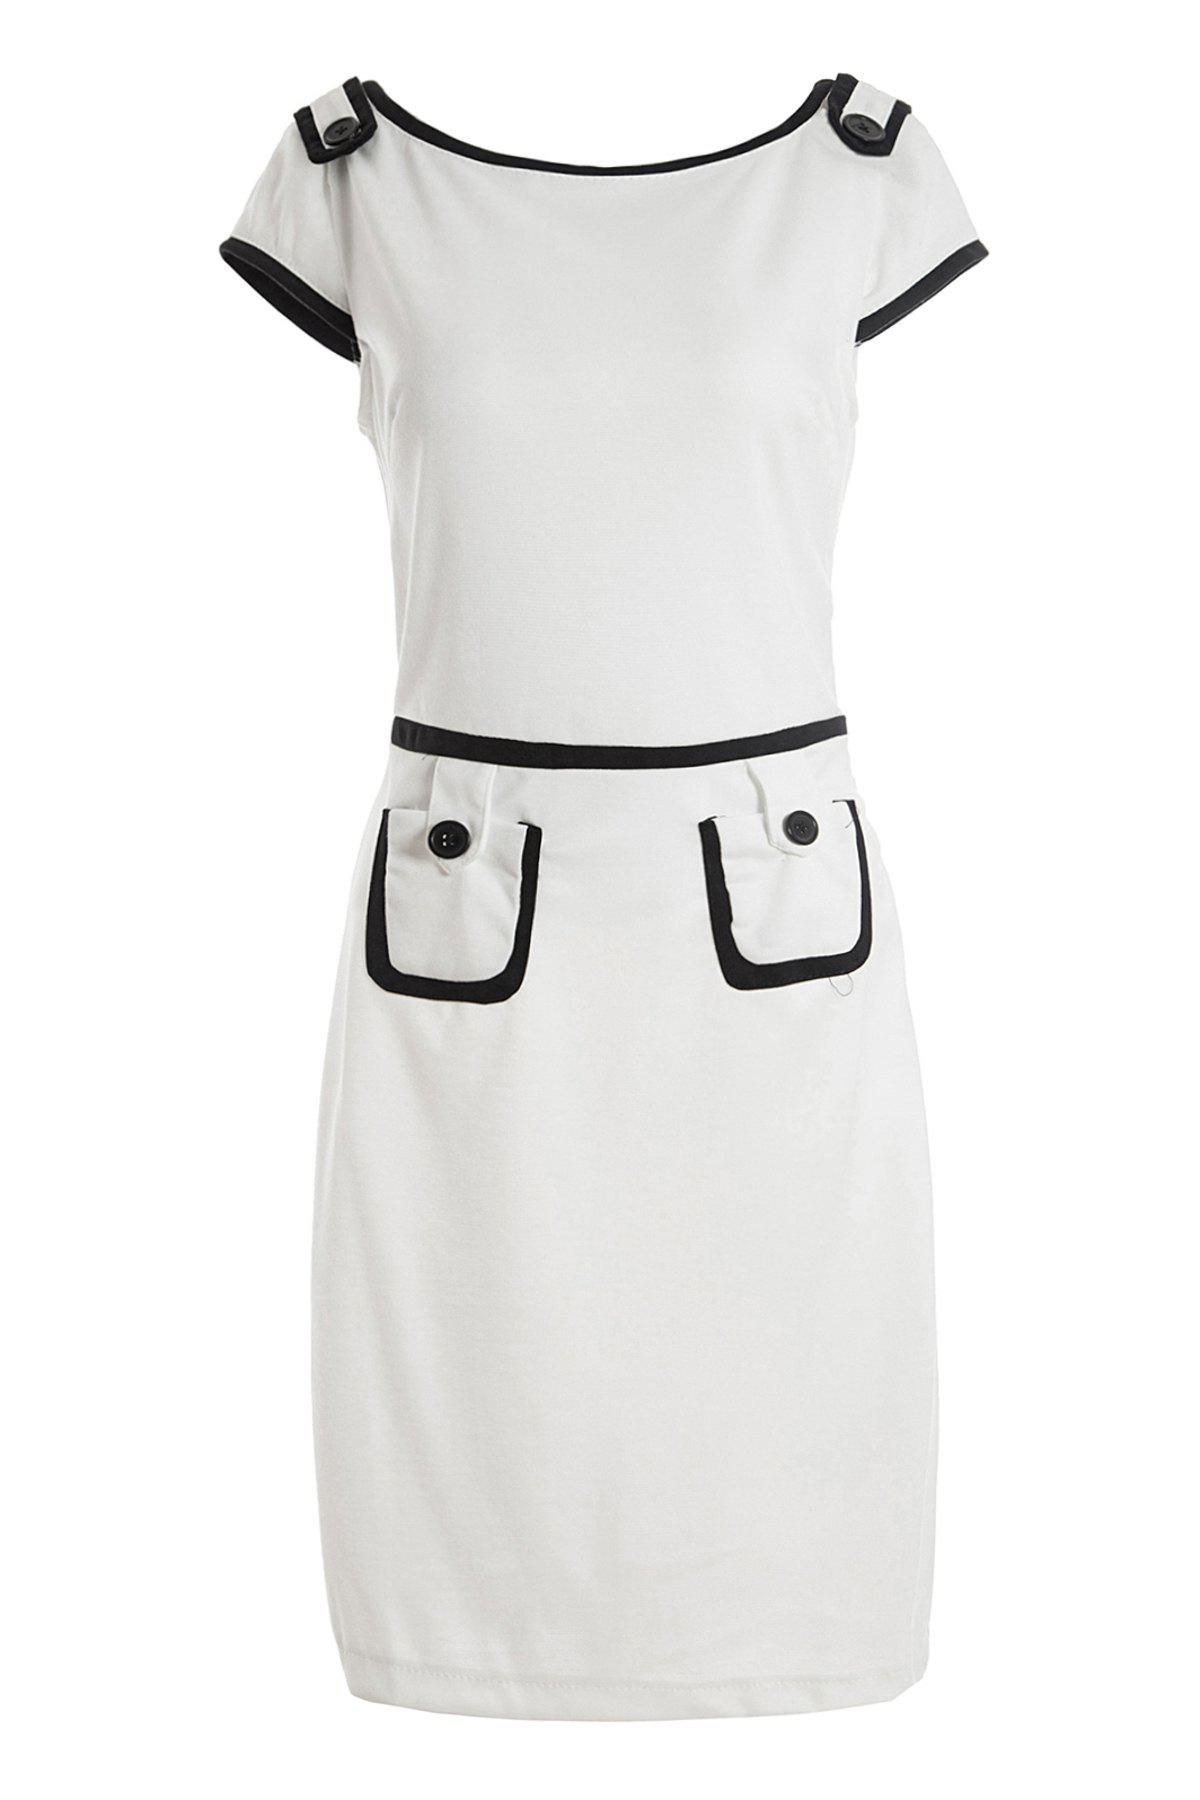 Retro Style Polyester Skinny Short Sleeves Color Block Women's Dress - WHITE M